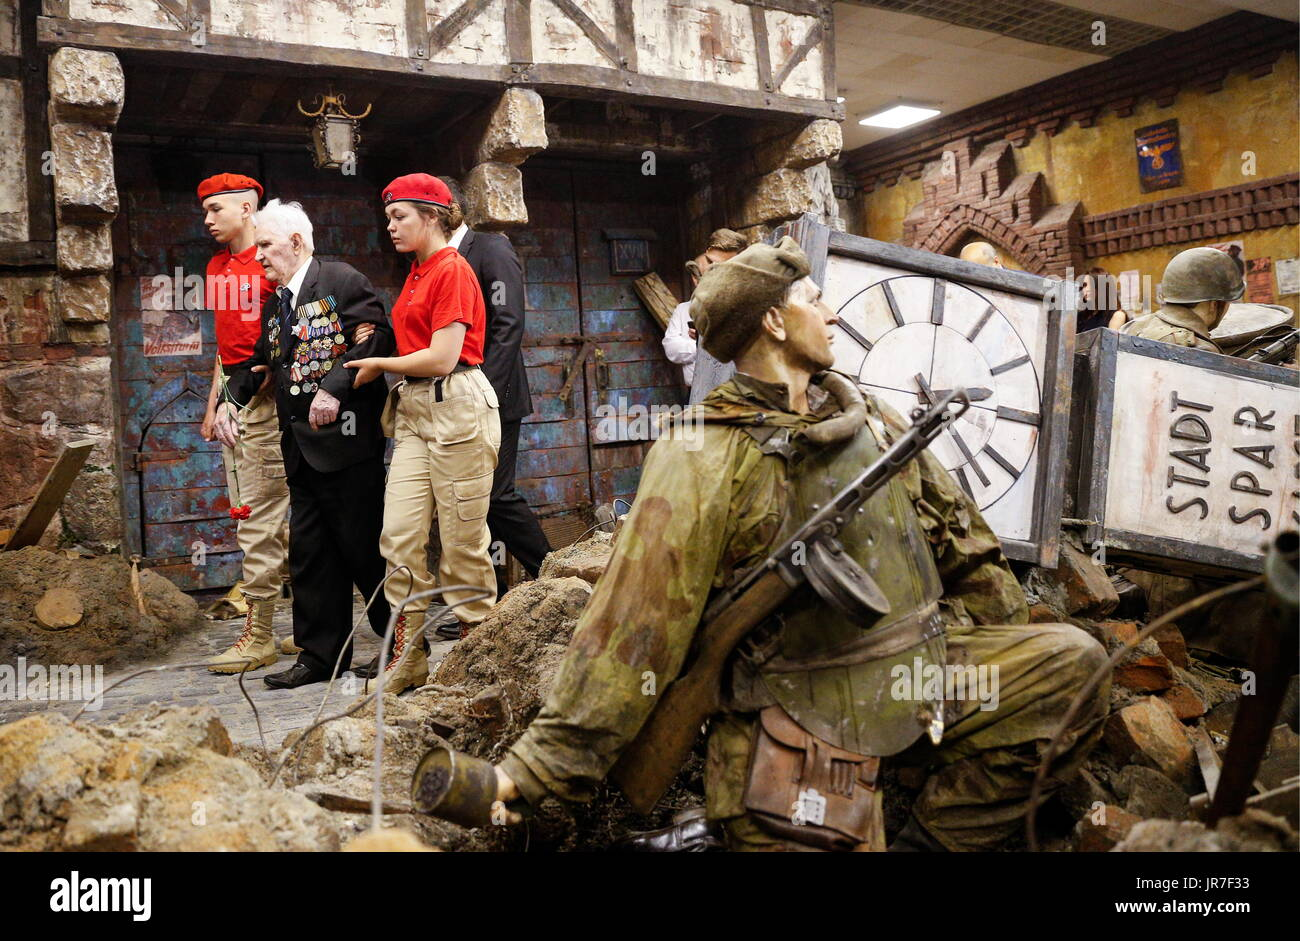 Kaliningrad Region, Russia. 3rd Aug, 2017. War veteran Ivan Tikhonov (2nd L) who took part in the final assault on Konigsberg in 1945, views a 3-dimensional panoramic exhibition titled 'Konigsberg 1945: the Final Assault' at the Kaliningrad Region Museum of History and Arts; the 360-degree display, which depicts the April 1945 assault by the Red Army on the city of Konigsberg in WWII, is an artwork by the Nevsky Batalist team led by Dmitry Poshtarenko. Credit: Vitaly Nevar/TASS/Alamy Live News - Stock Image